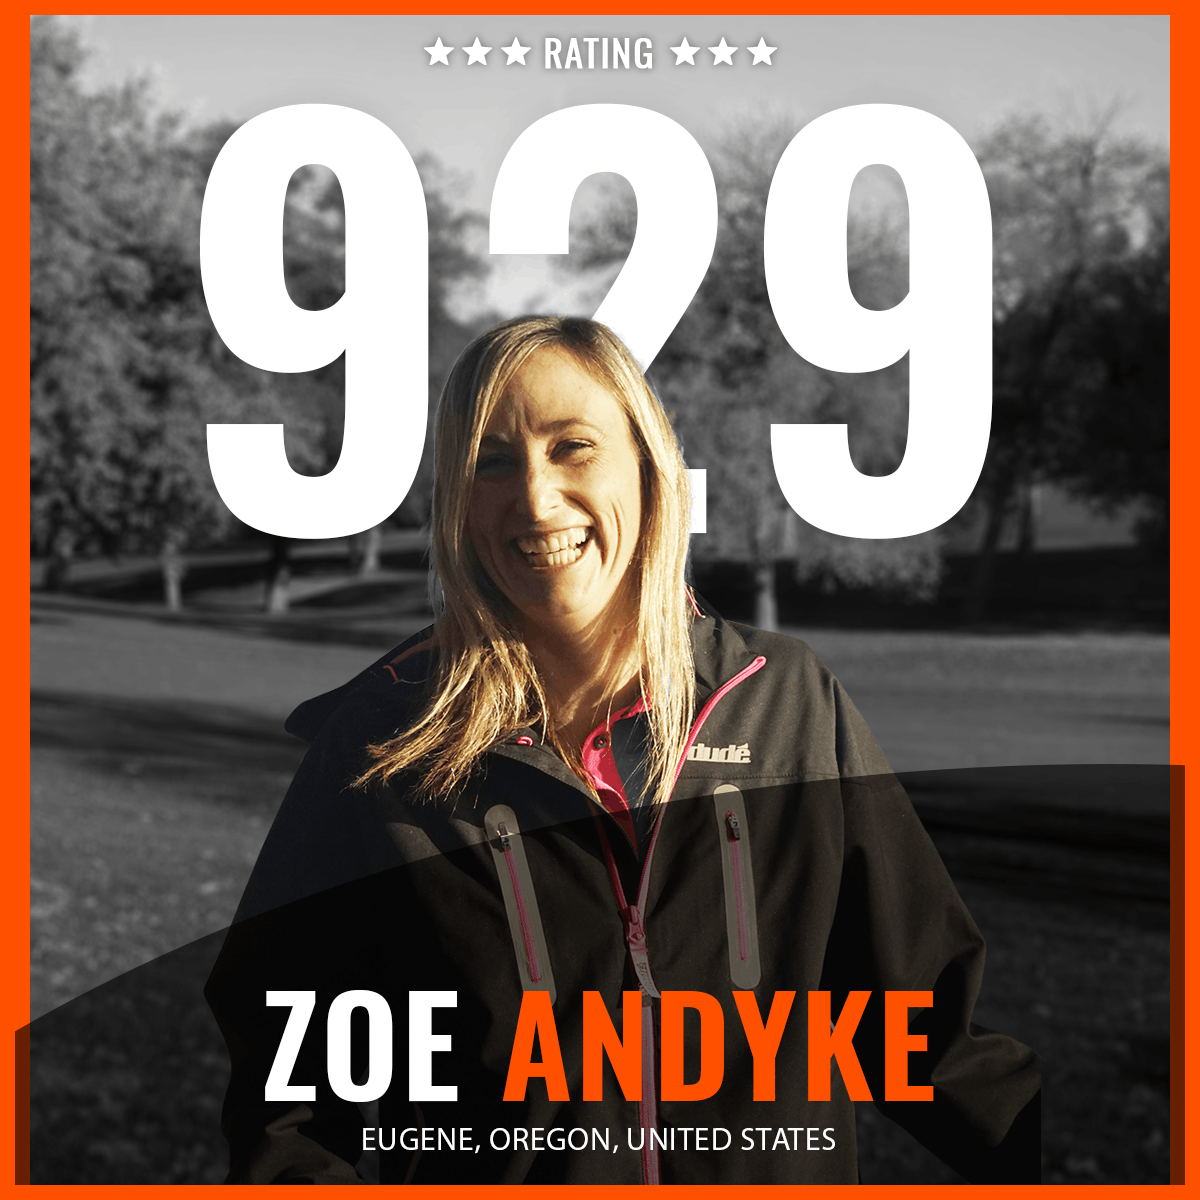 An Image of Zoe Andyke Dude Clothing Ambassador